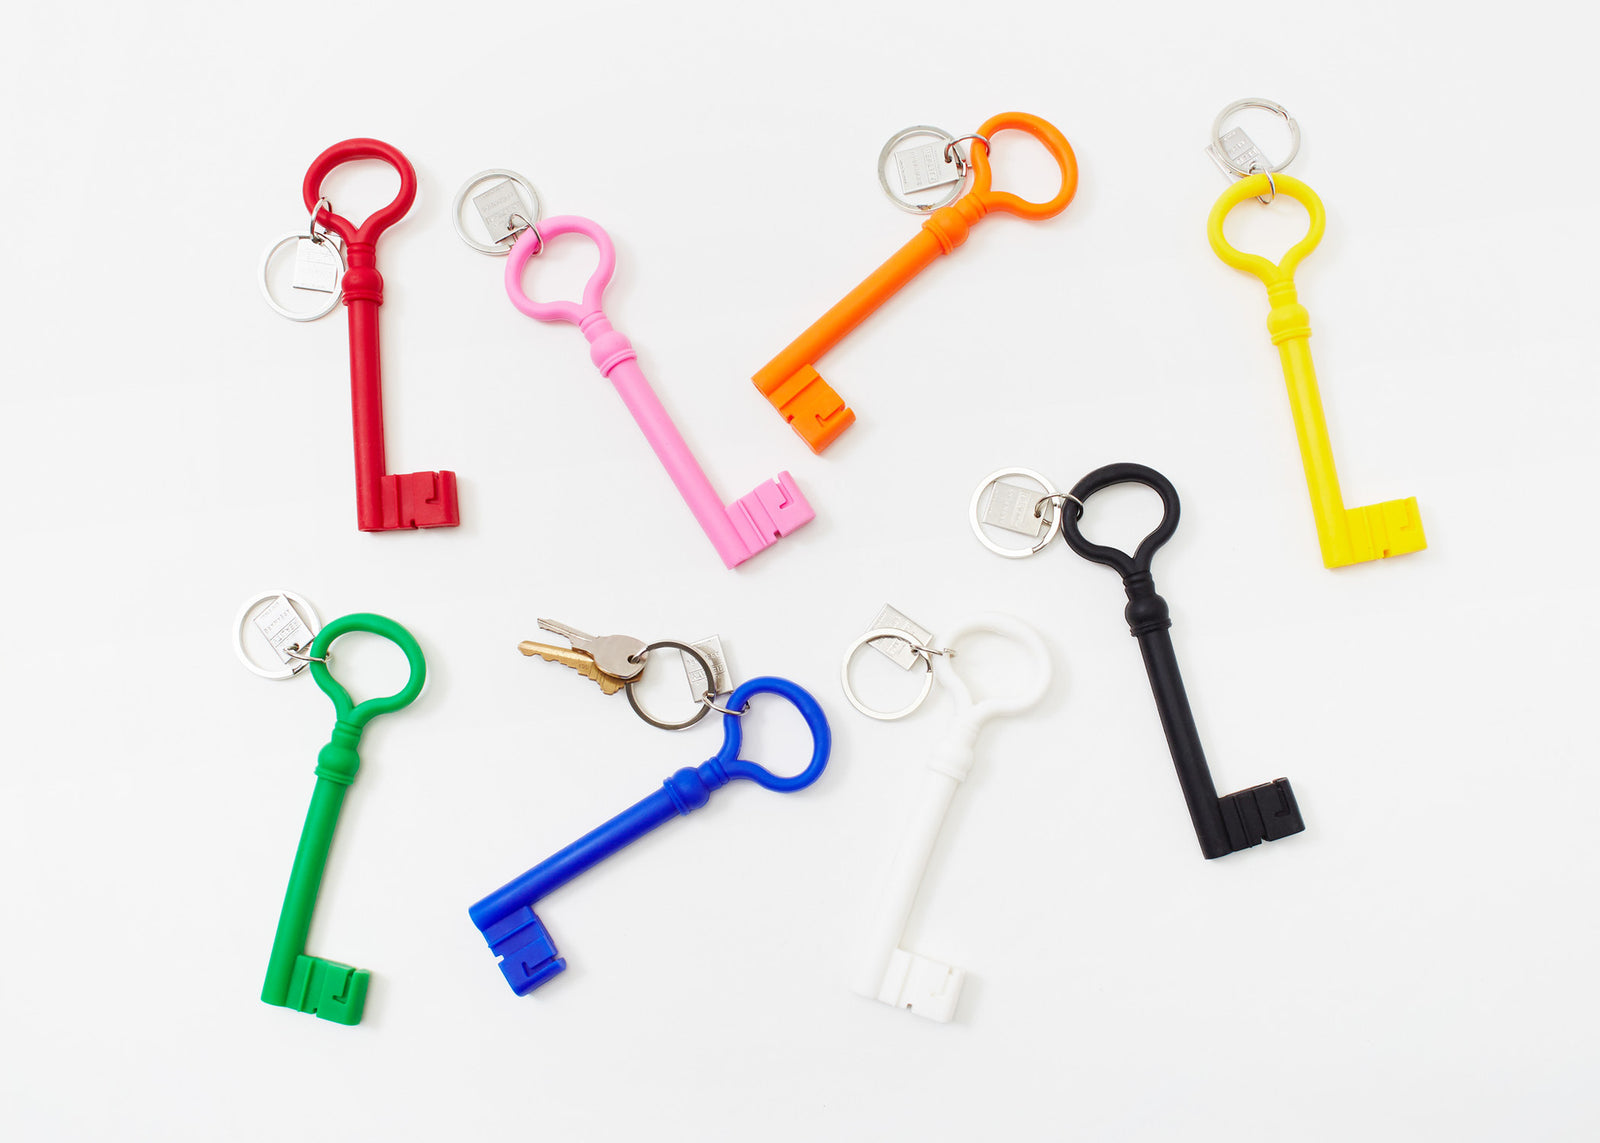 Reality Keychain Key - Green